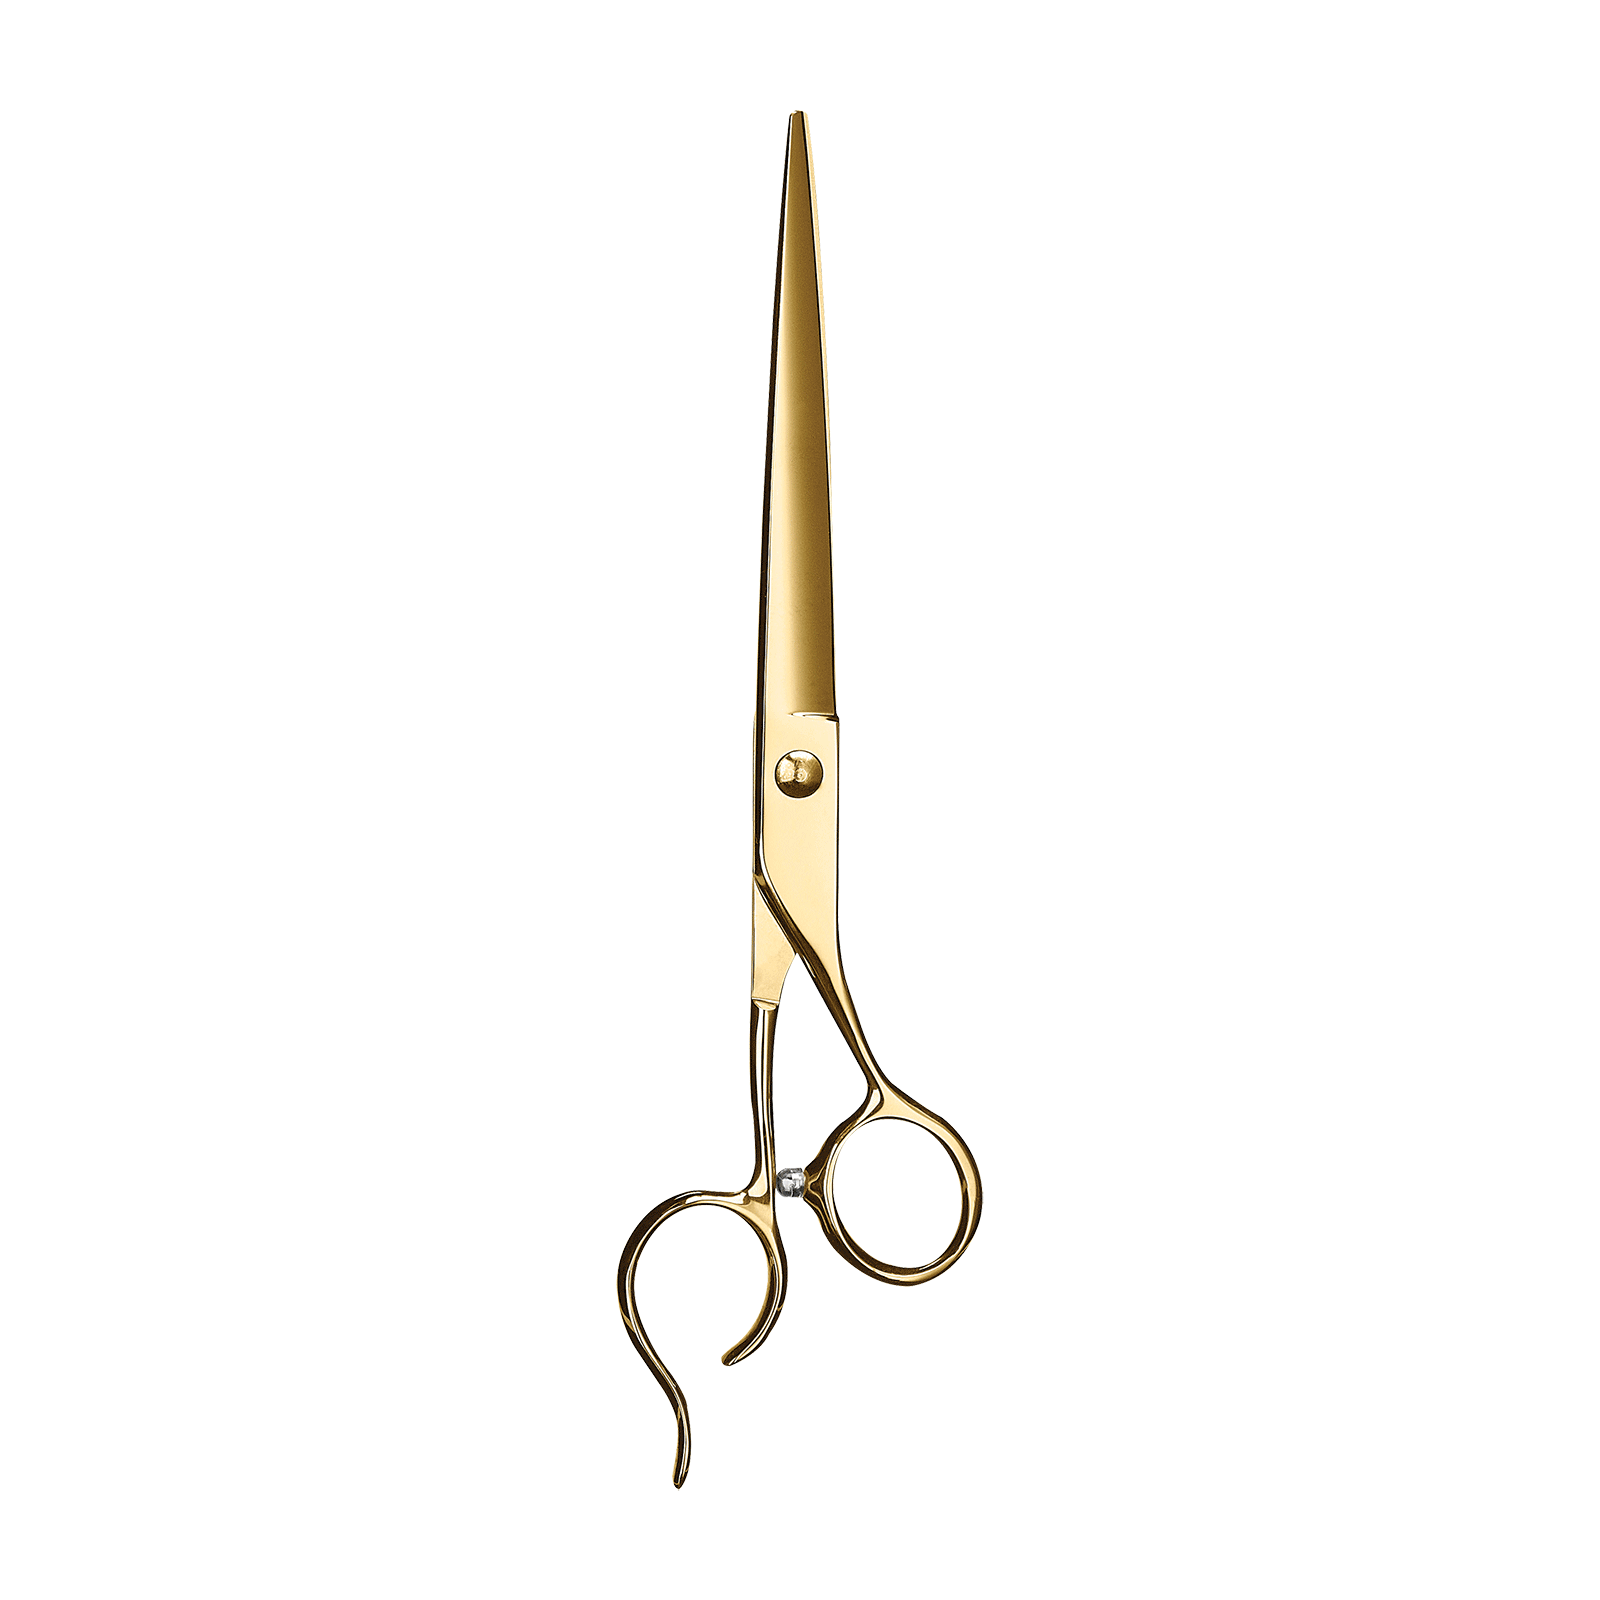 BaBylissPRO Barberology FXGBS8 Gold Thinning Shear 8